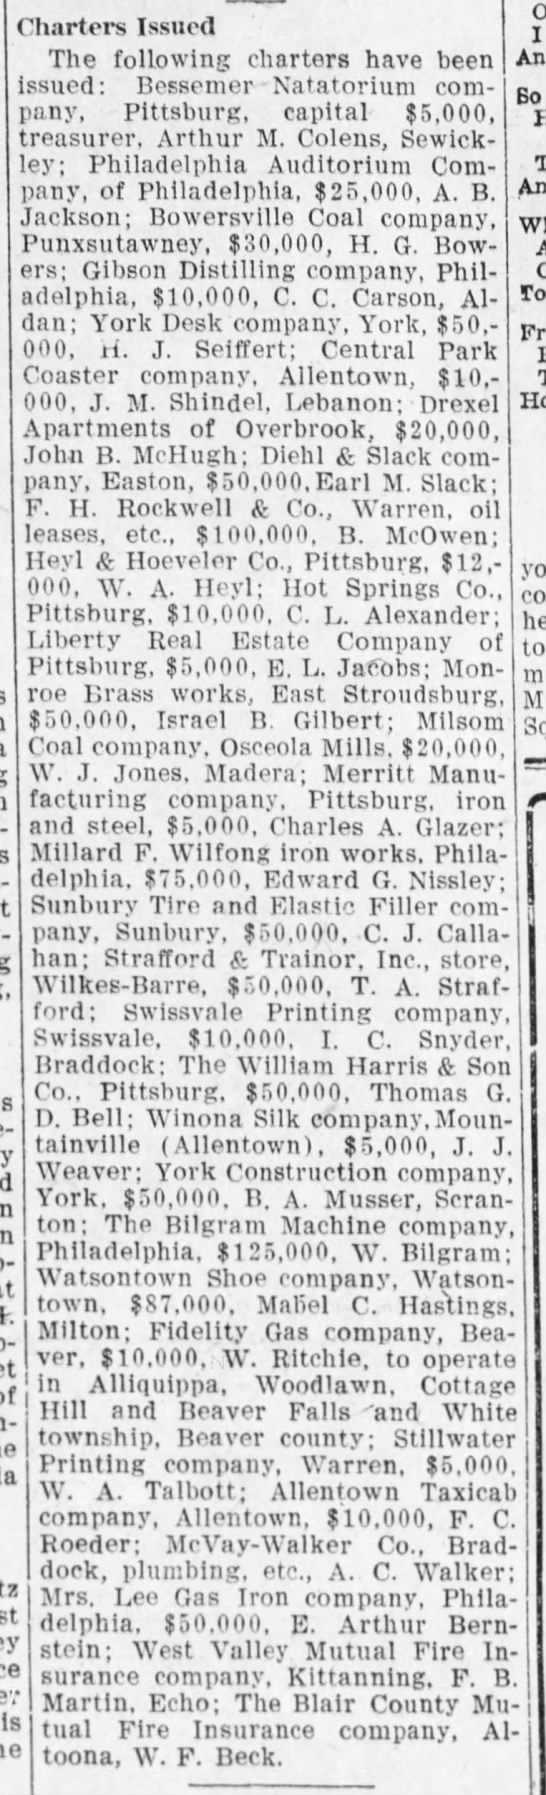 Mabel Hastings chartered shoe company, Harrisburg Telegraph, 27 May, 1909, p. 6